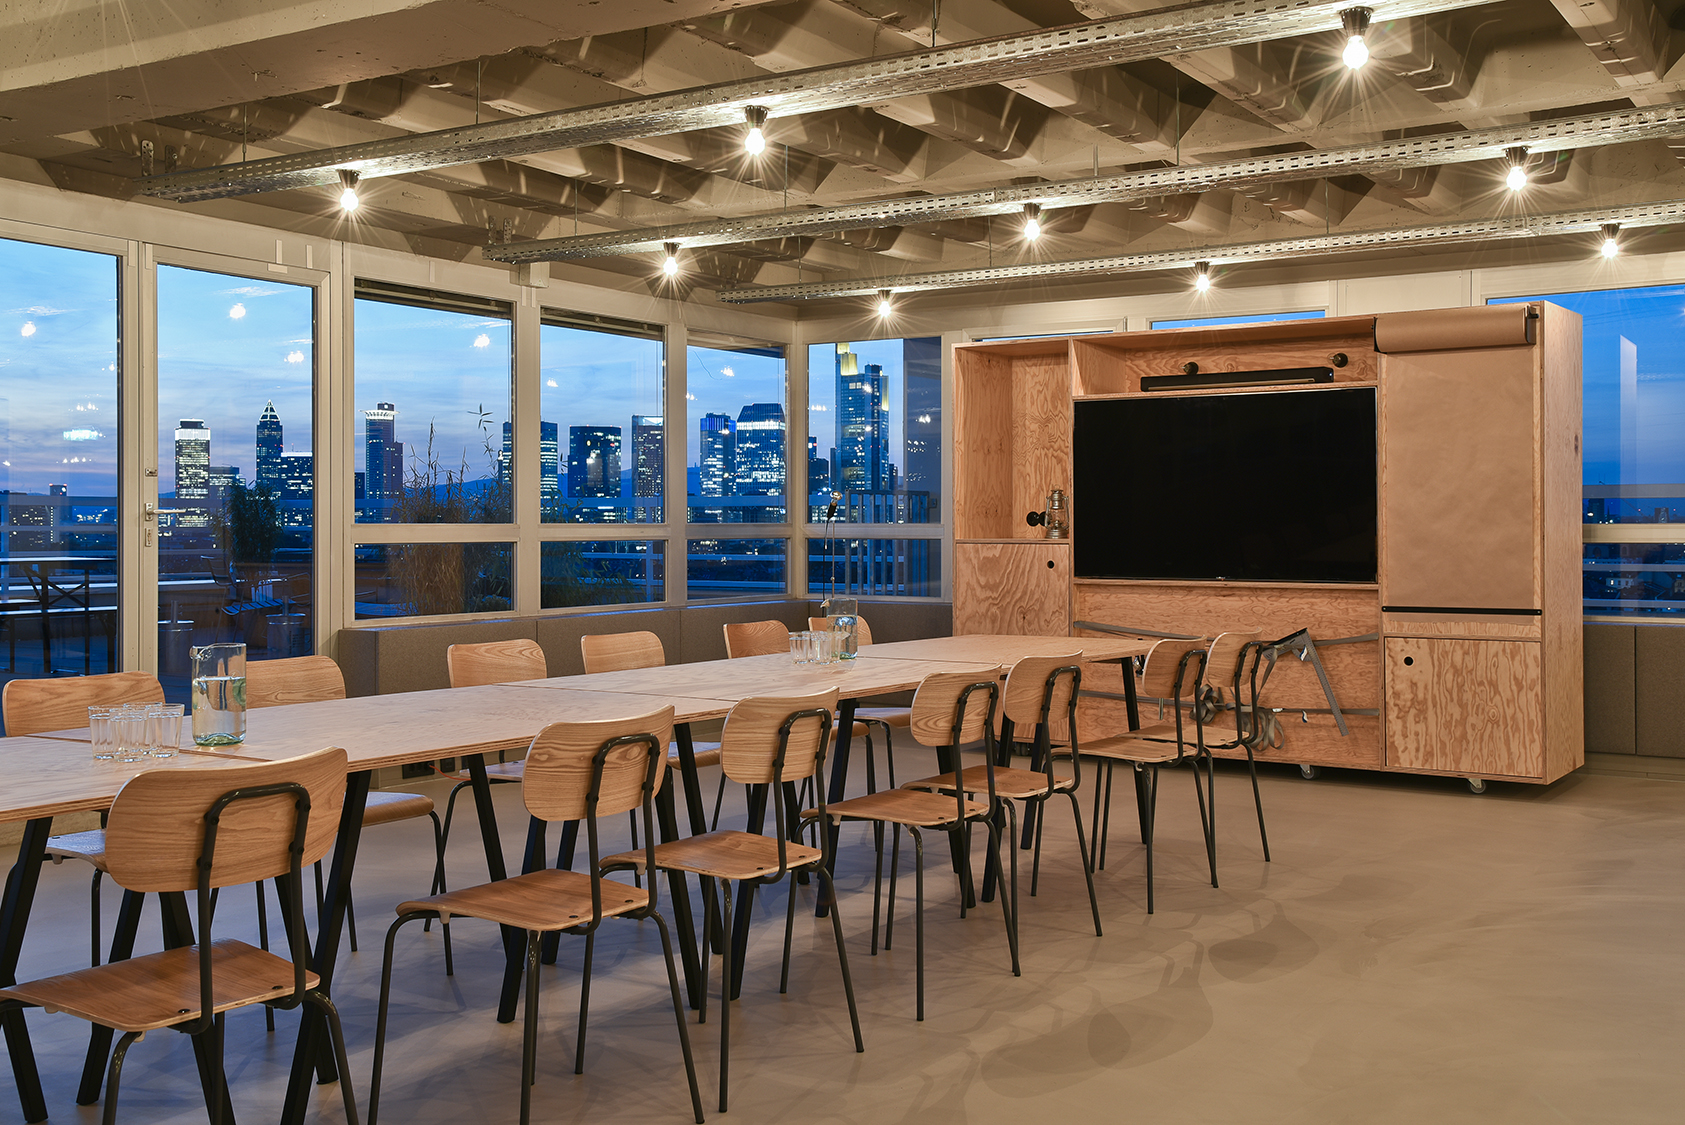 Meeting area with view and lights 2.jpg